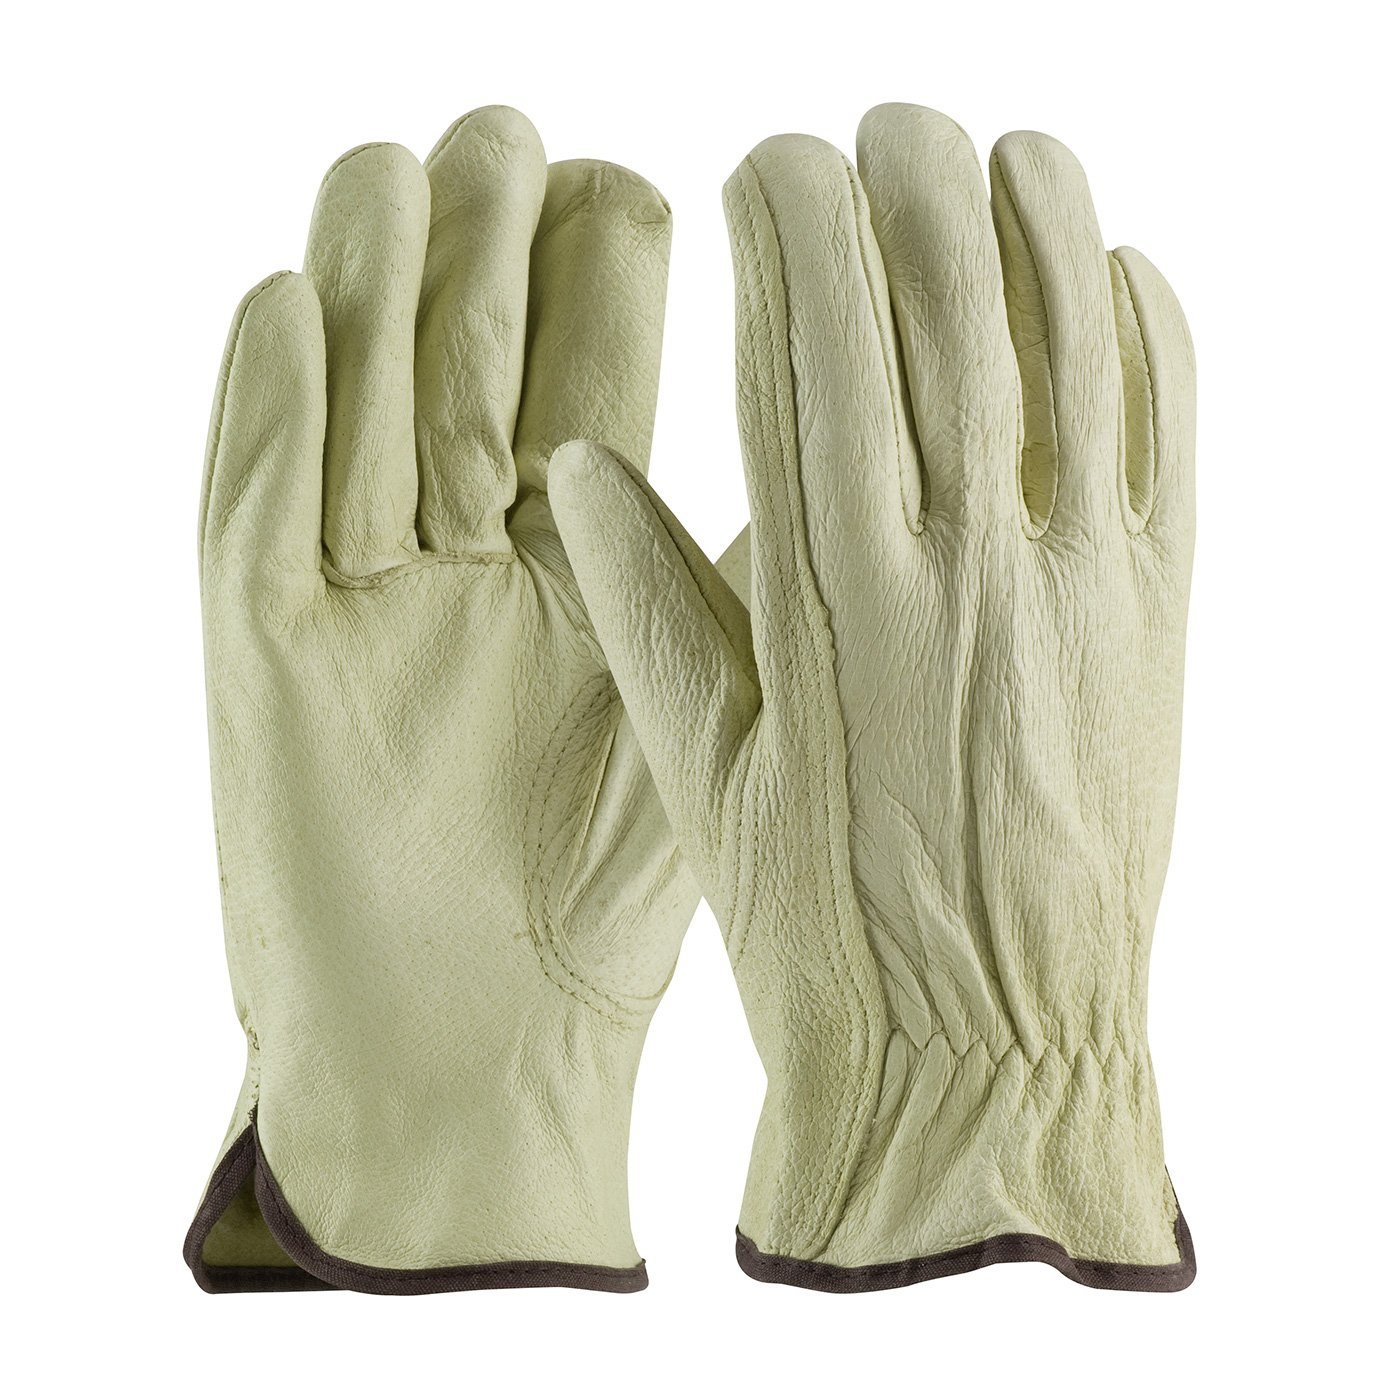 48 Pack PIP Industry Grade Top Grain Pigskin Leather Driver's/Work Glove with Keystone Thumb